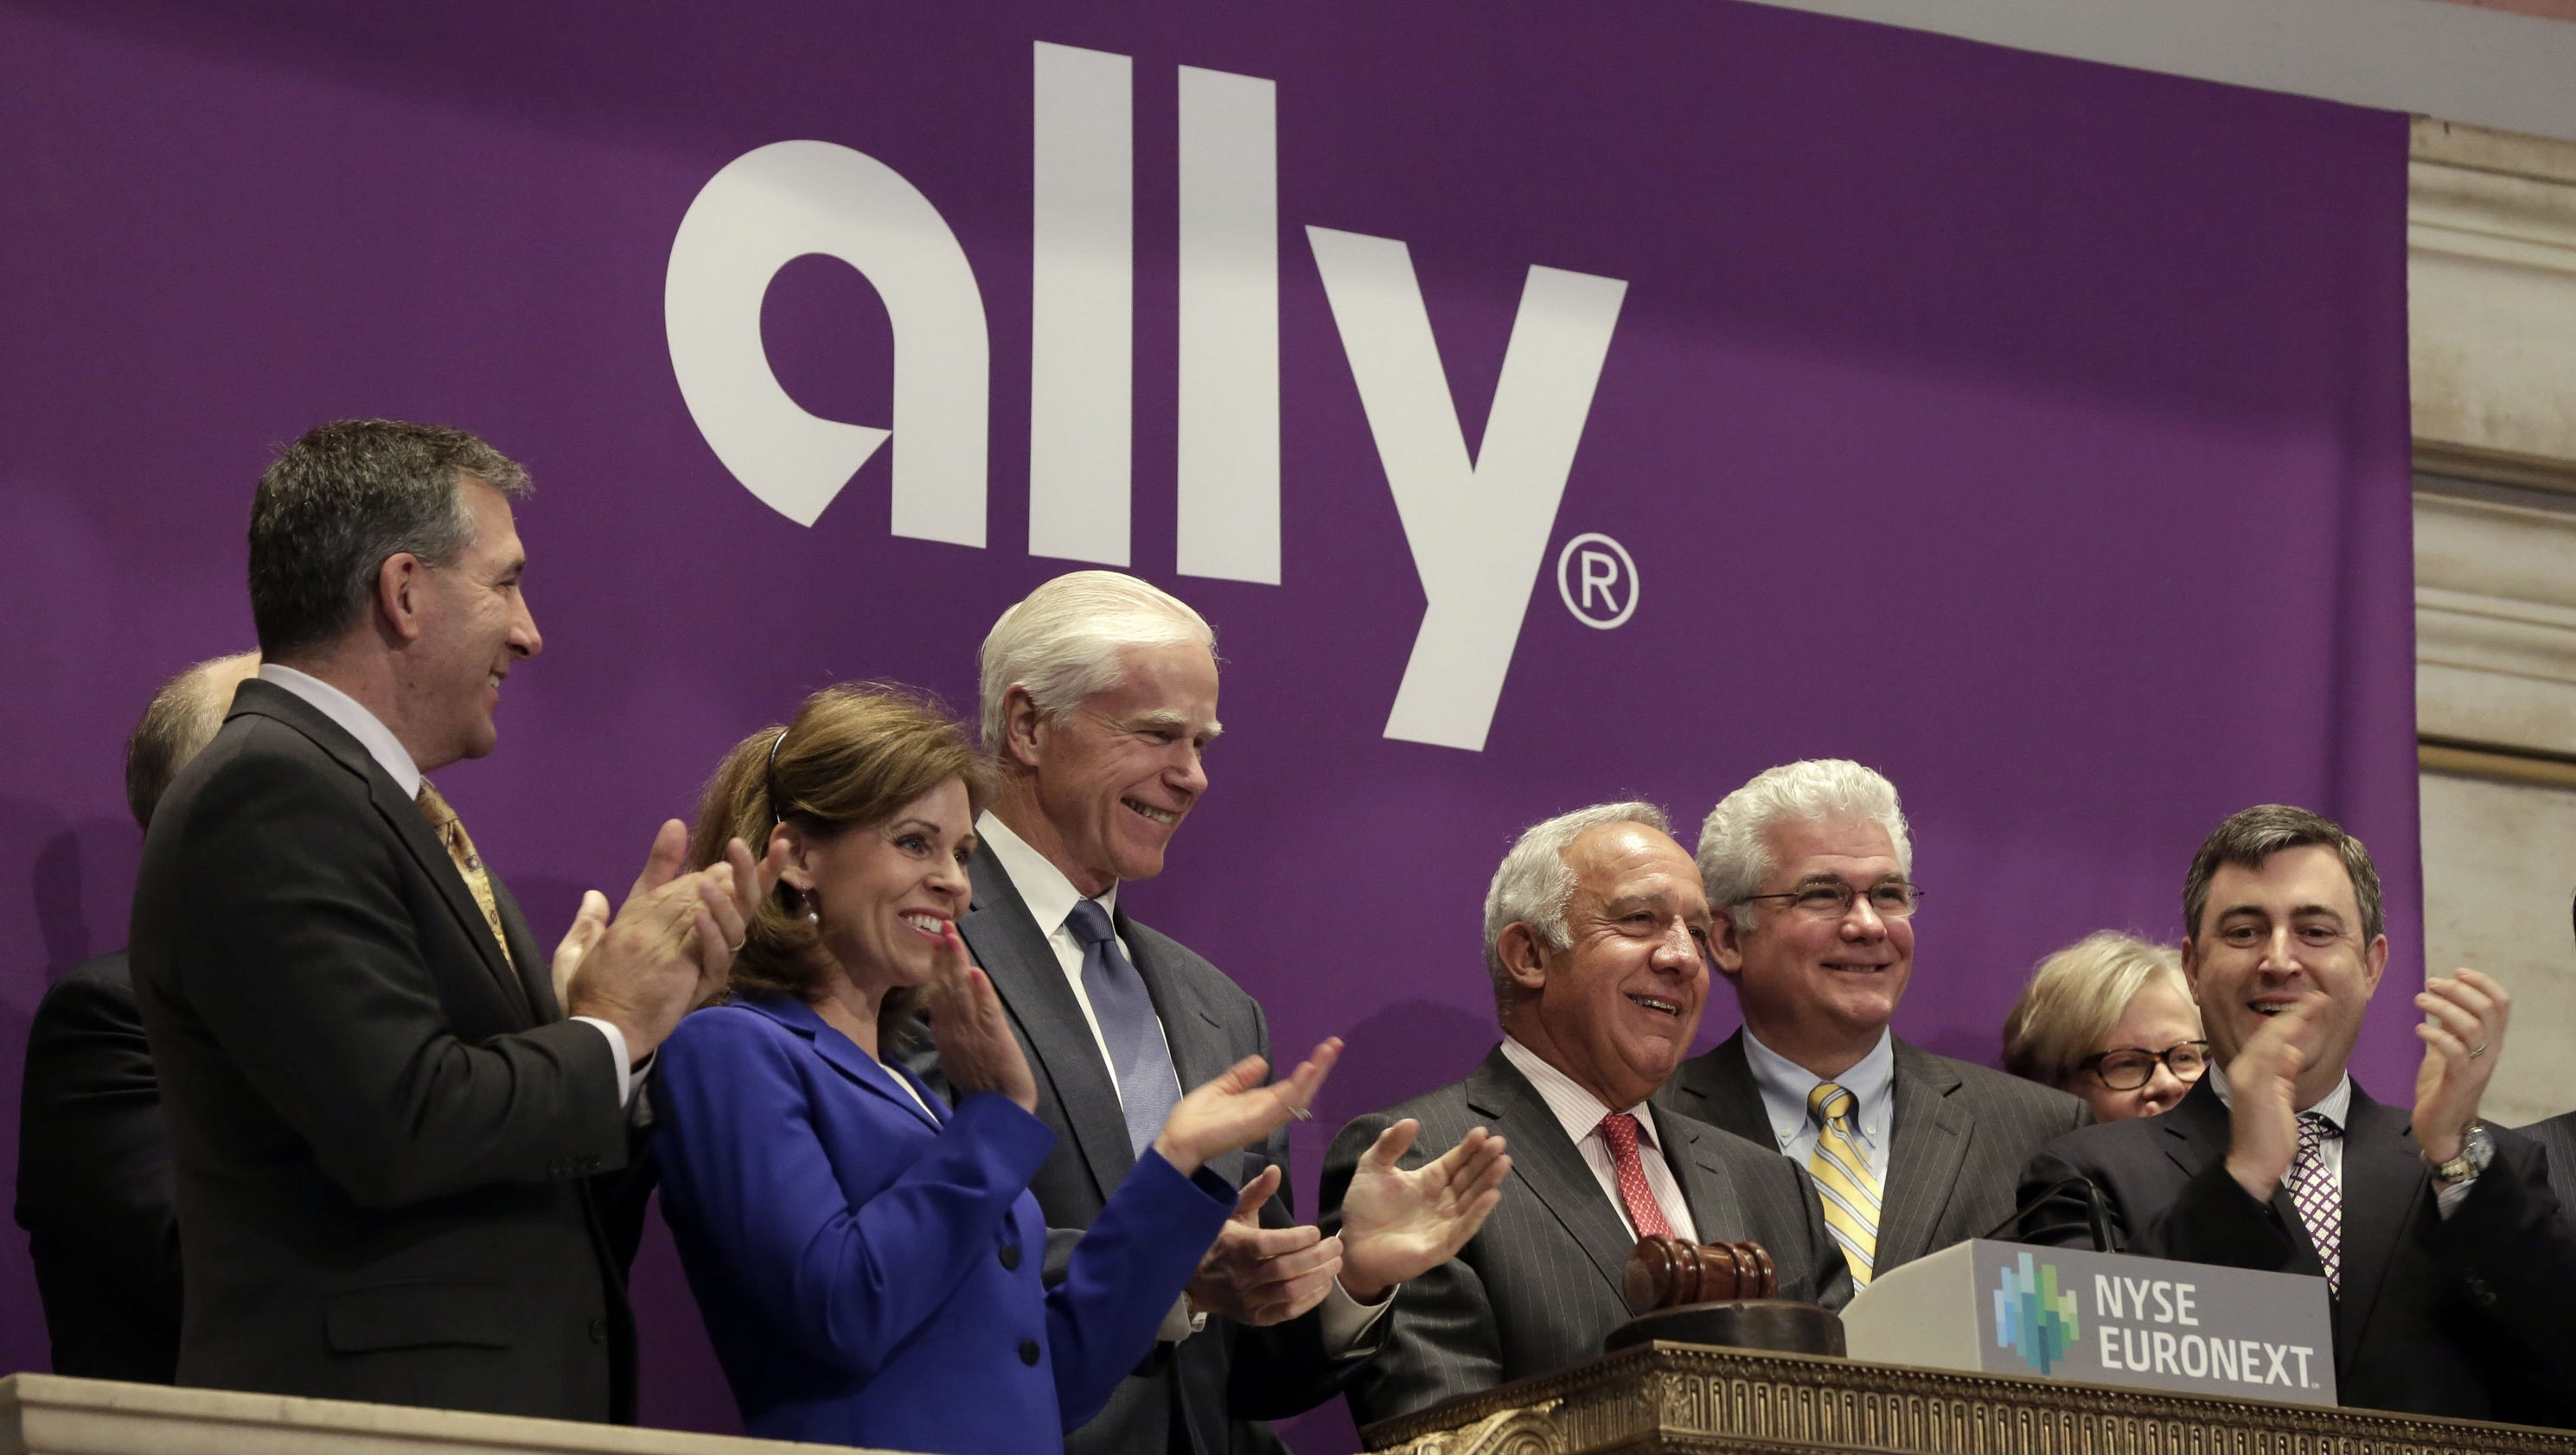 What are some services offered at Ally Bank branch locations?